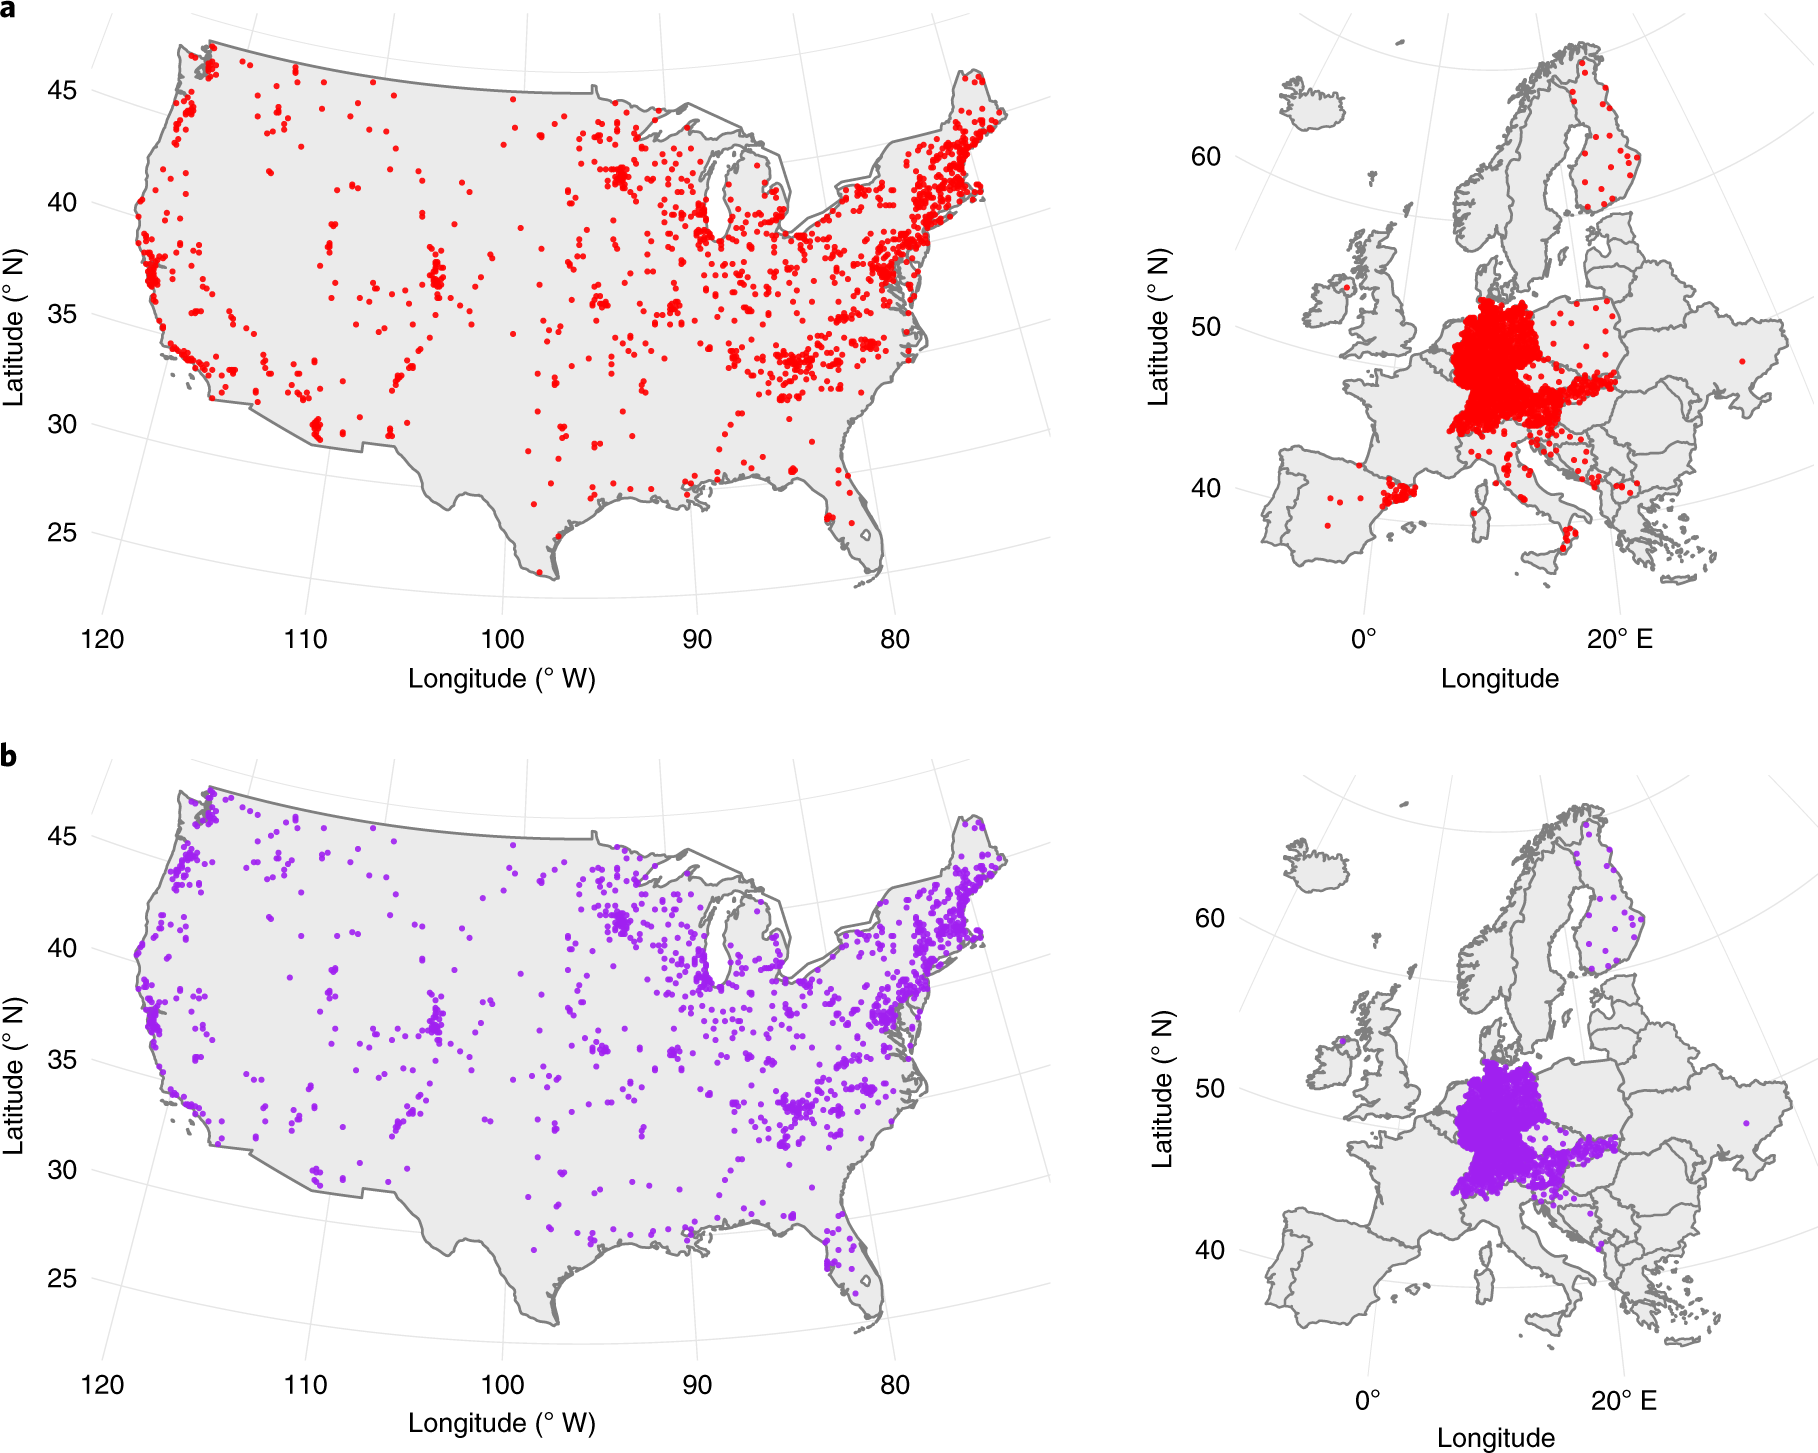 The effect of urbanization on plant phenology depends on regional temp